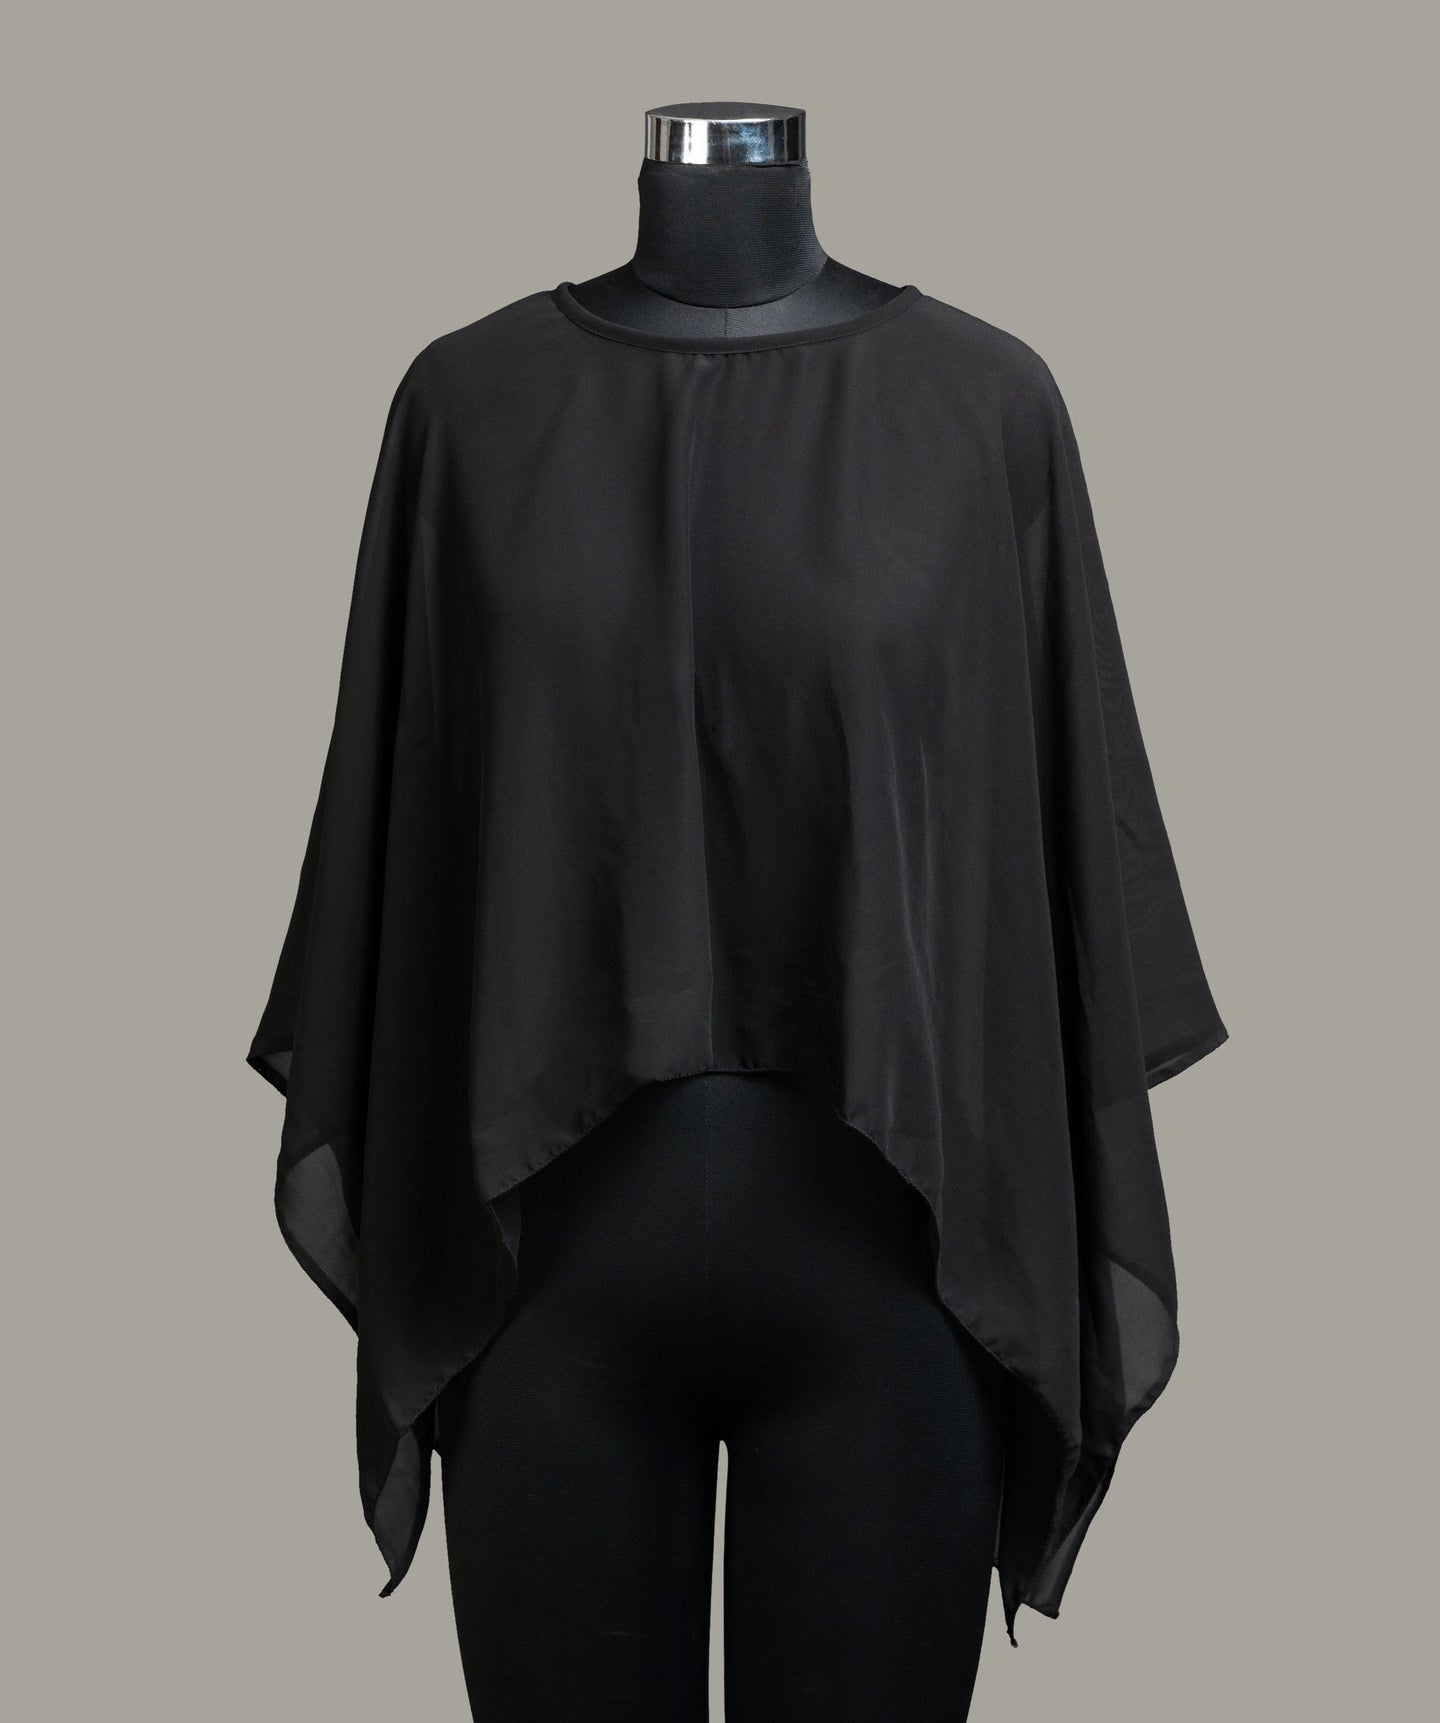 Solid Black Cape Top